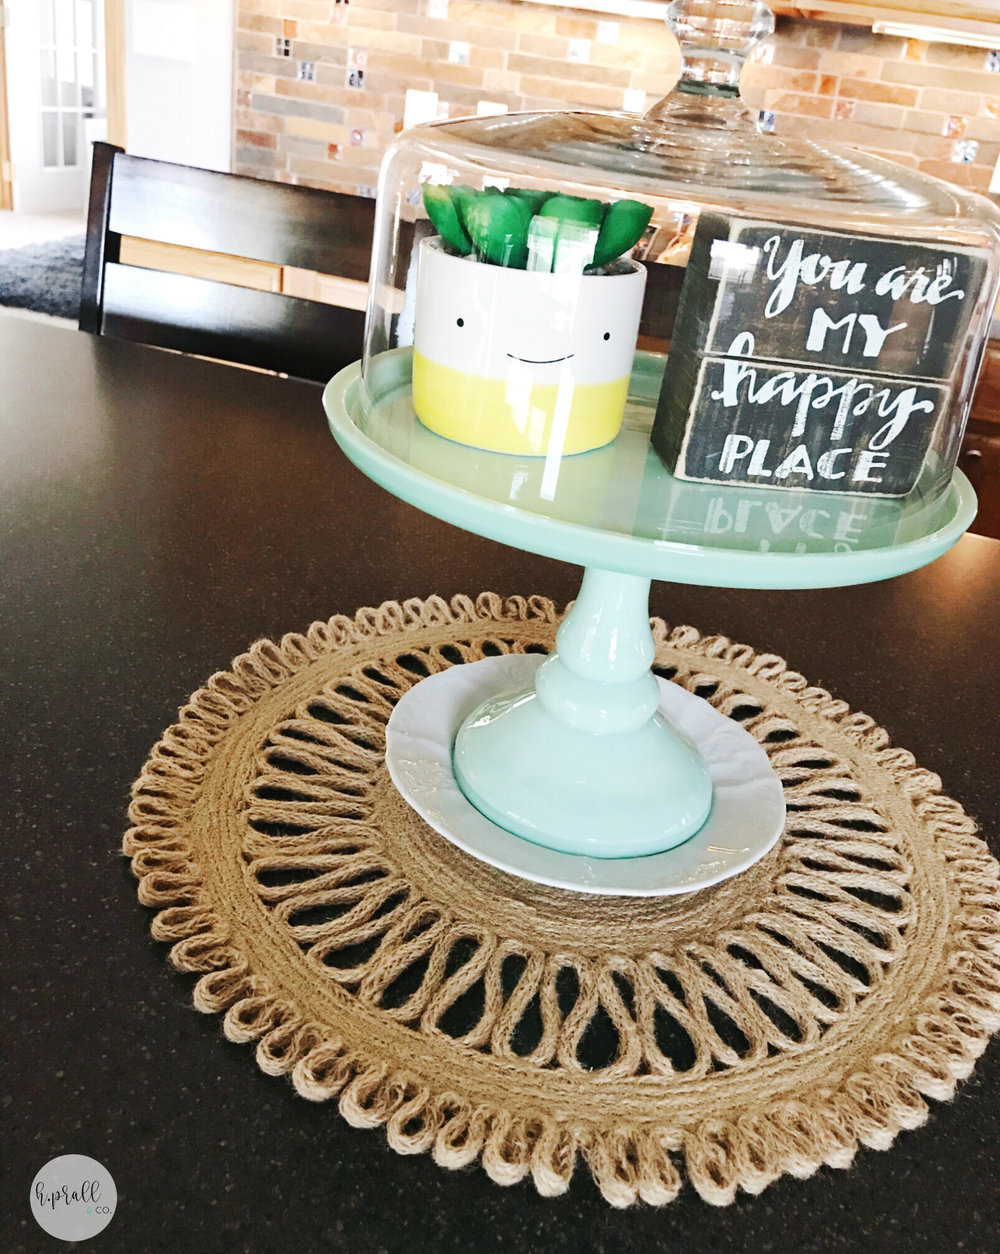 Tips for using a cake stand to elevate decor by hprallandco.com | H.Prall & Co. Interior Decorating in Des Moines, IA